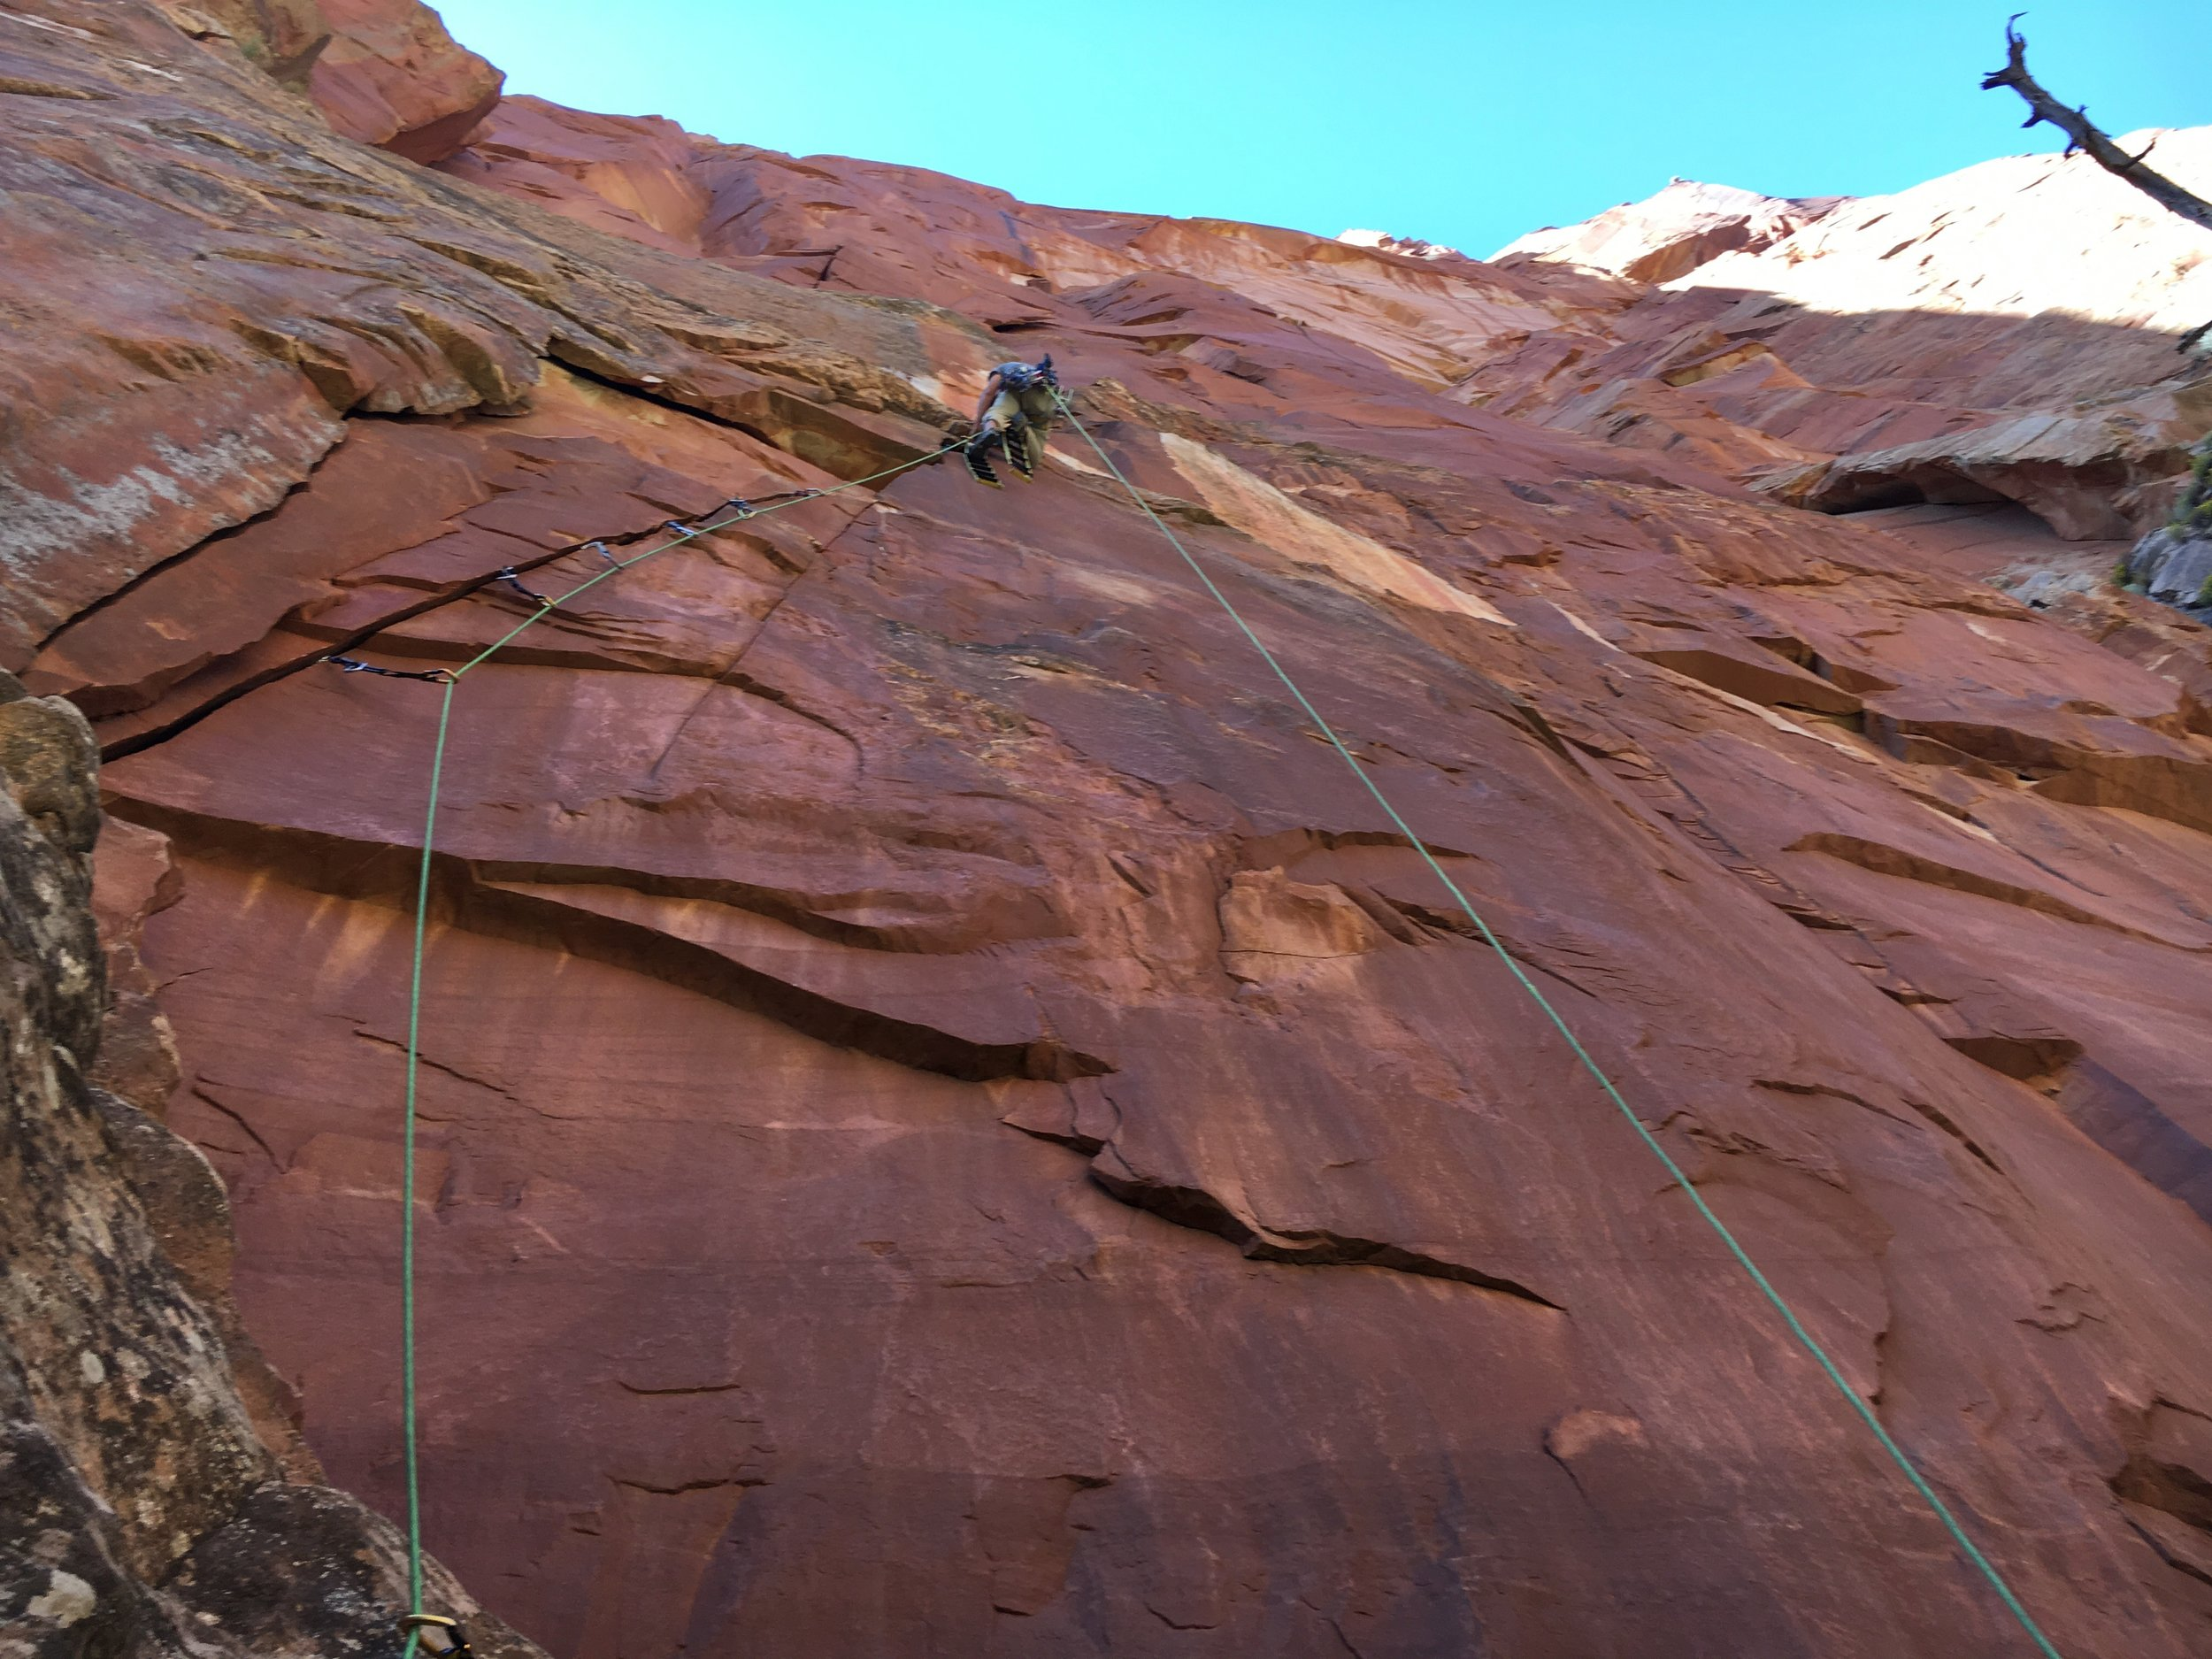 Me practicing aid climbing just outside Zions National Park